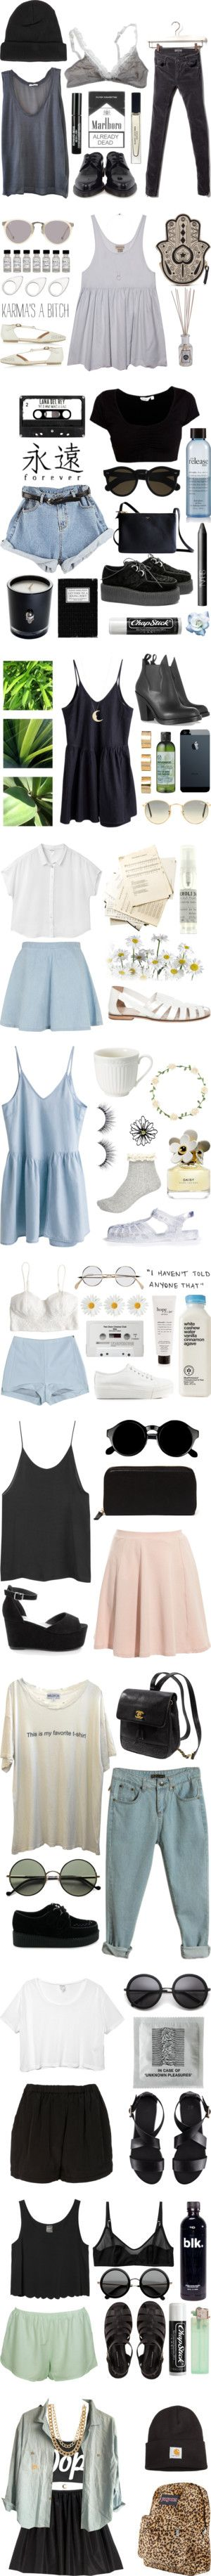 Minus the ciggies and the chains, I love pretty much every outfit...and usually I hate hipster fashion!